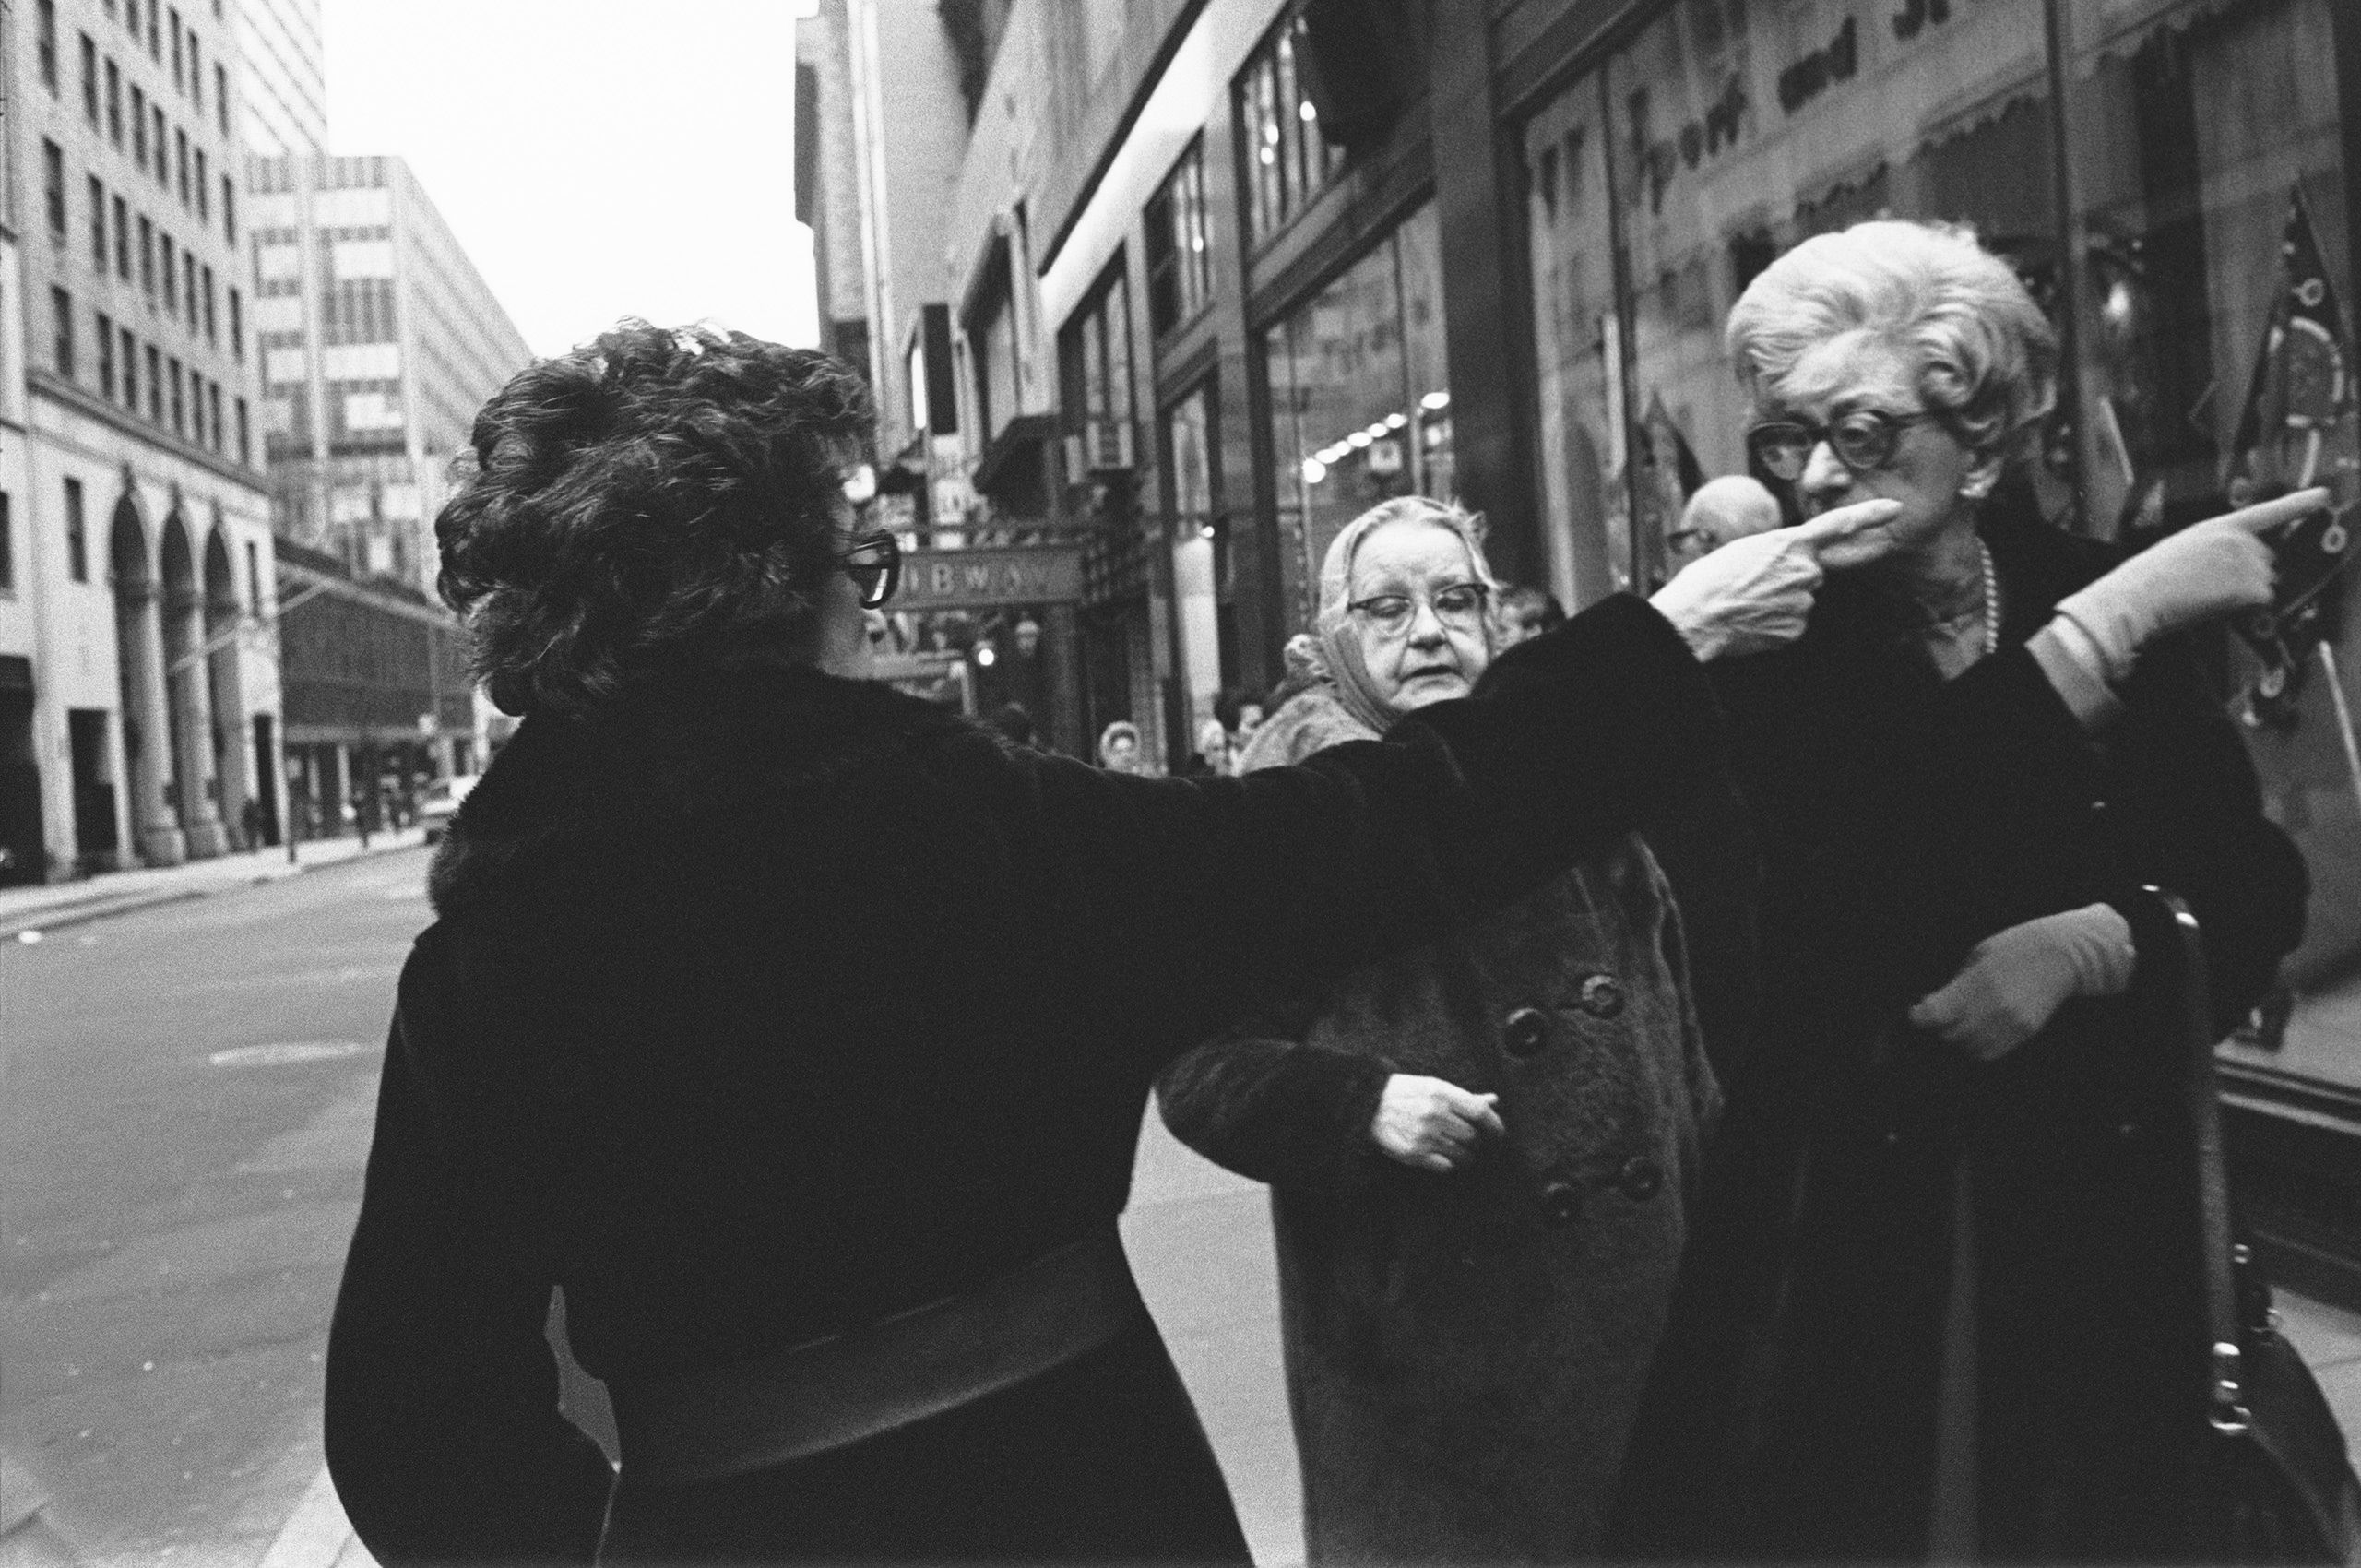 Pointing in NYC B&W street photography 1970 nineteen  seventies